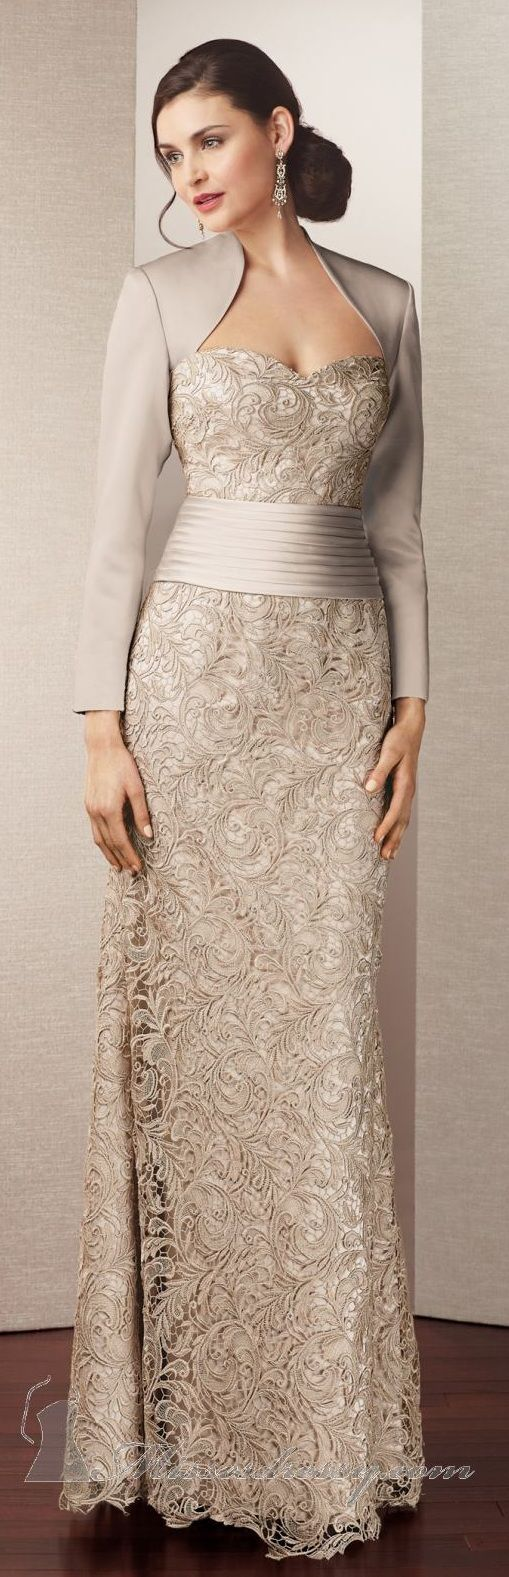 Alyce jean couture cloths pinterest dresses gowns and